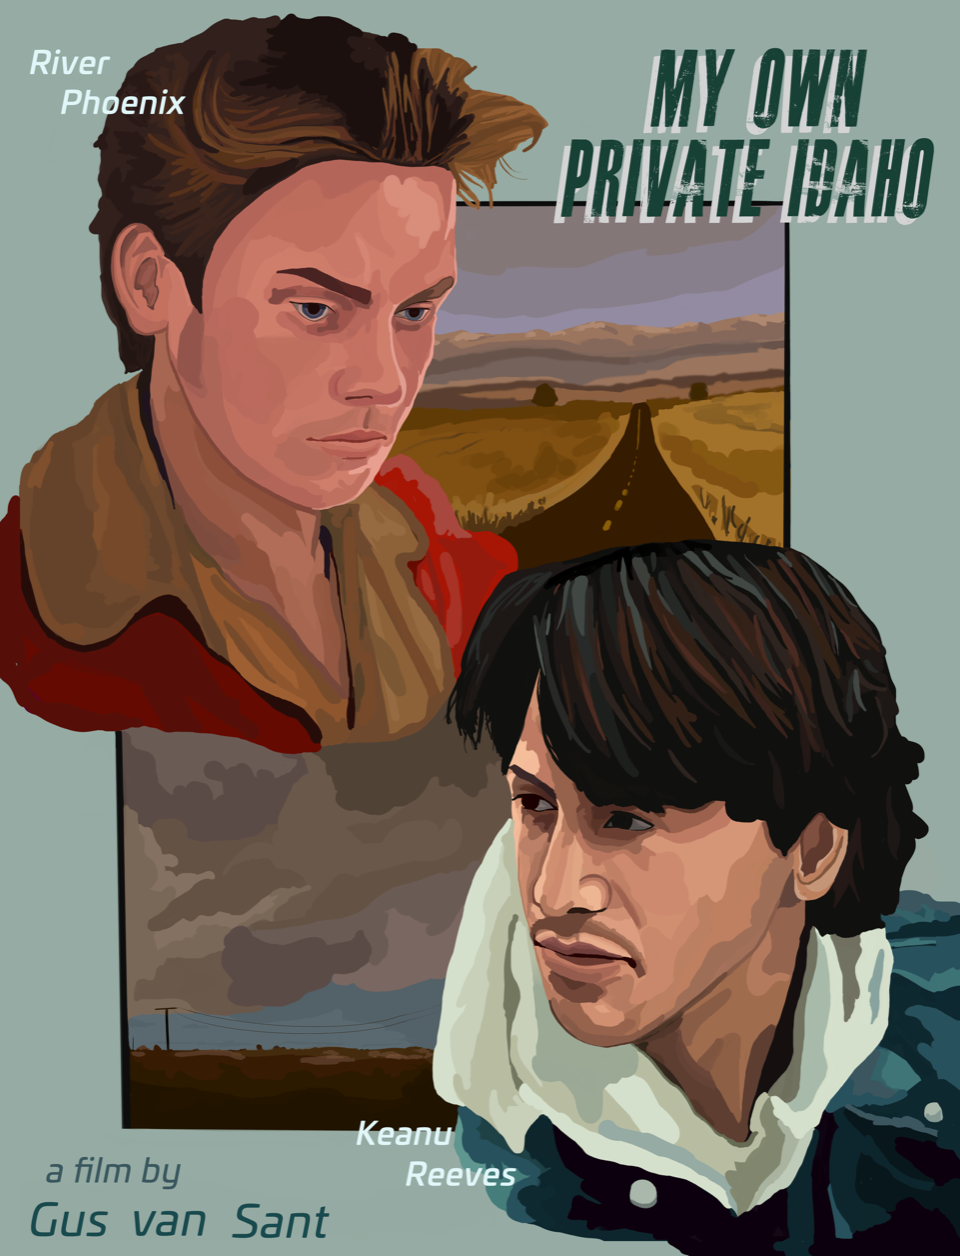 LGBTQ Movie Review: My Own Private Idaho